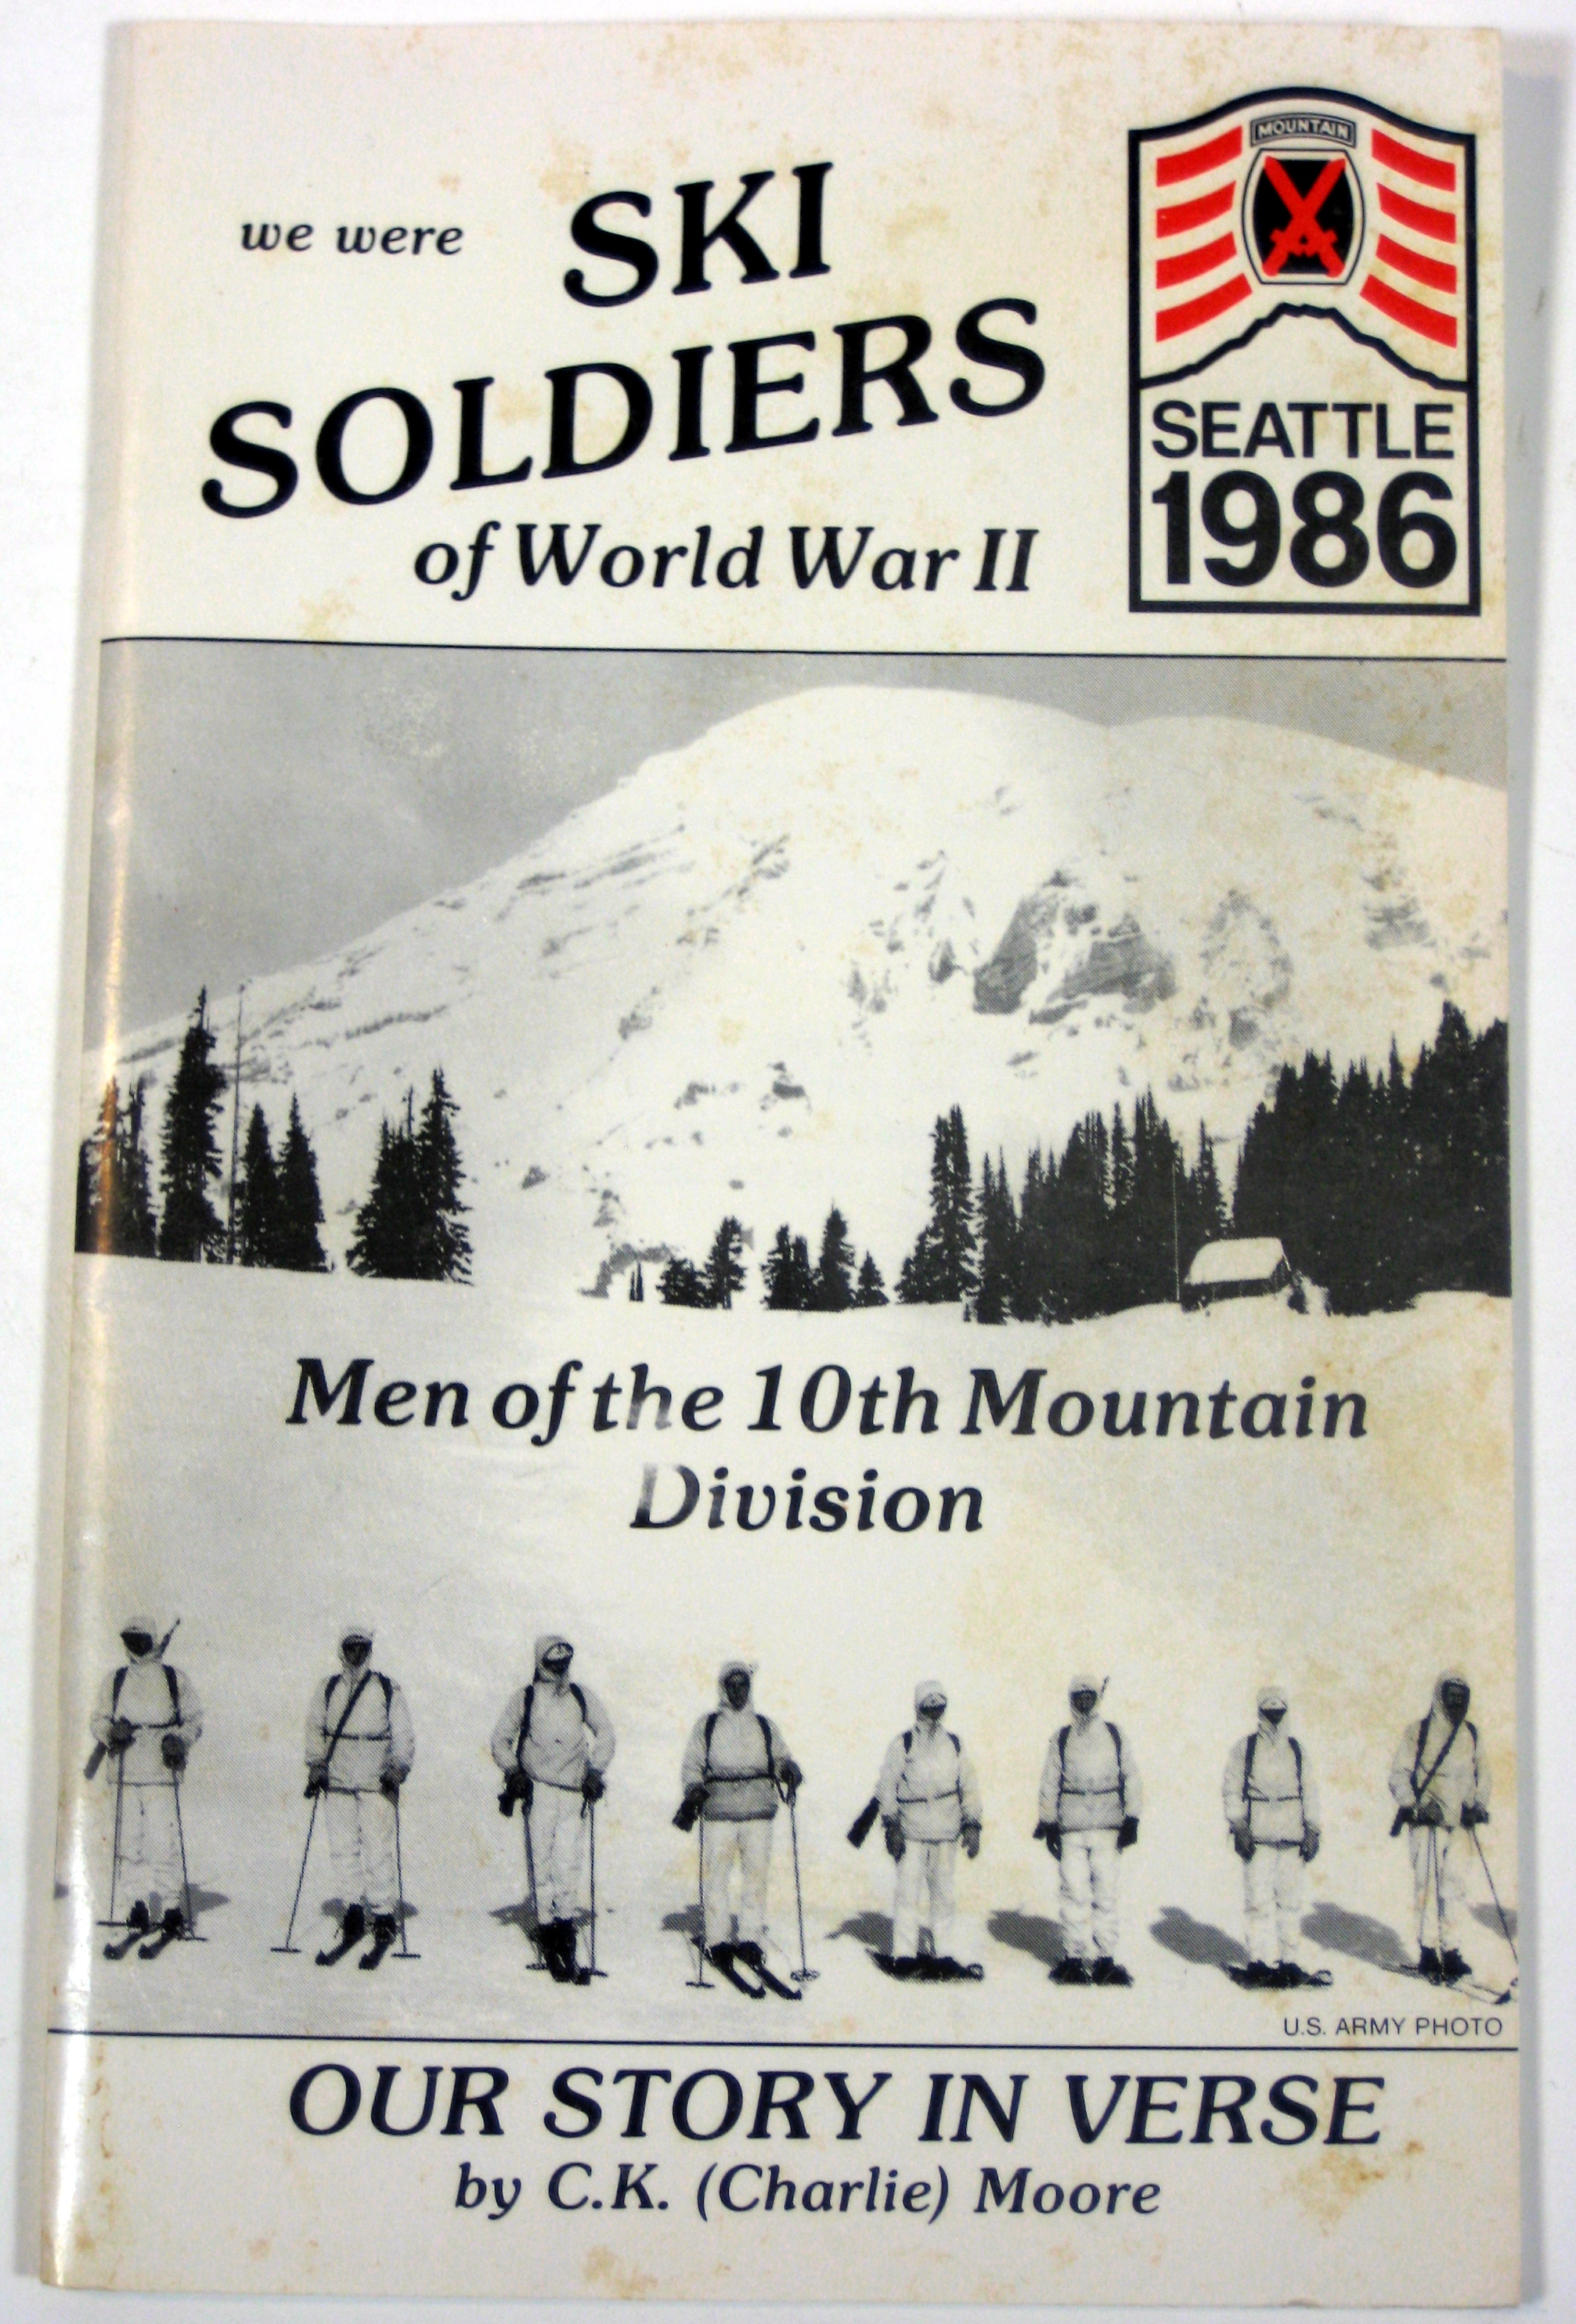 Image for We Were Ski Soldiers of World War II; Men of the 10th Mountain Division; Our Story in Verse